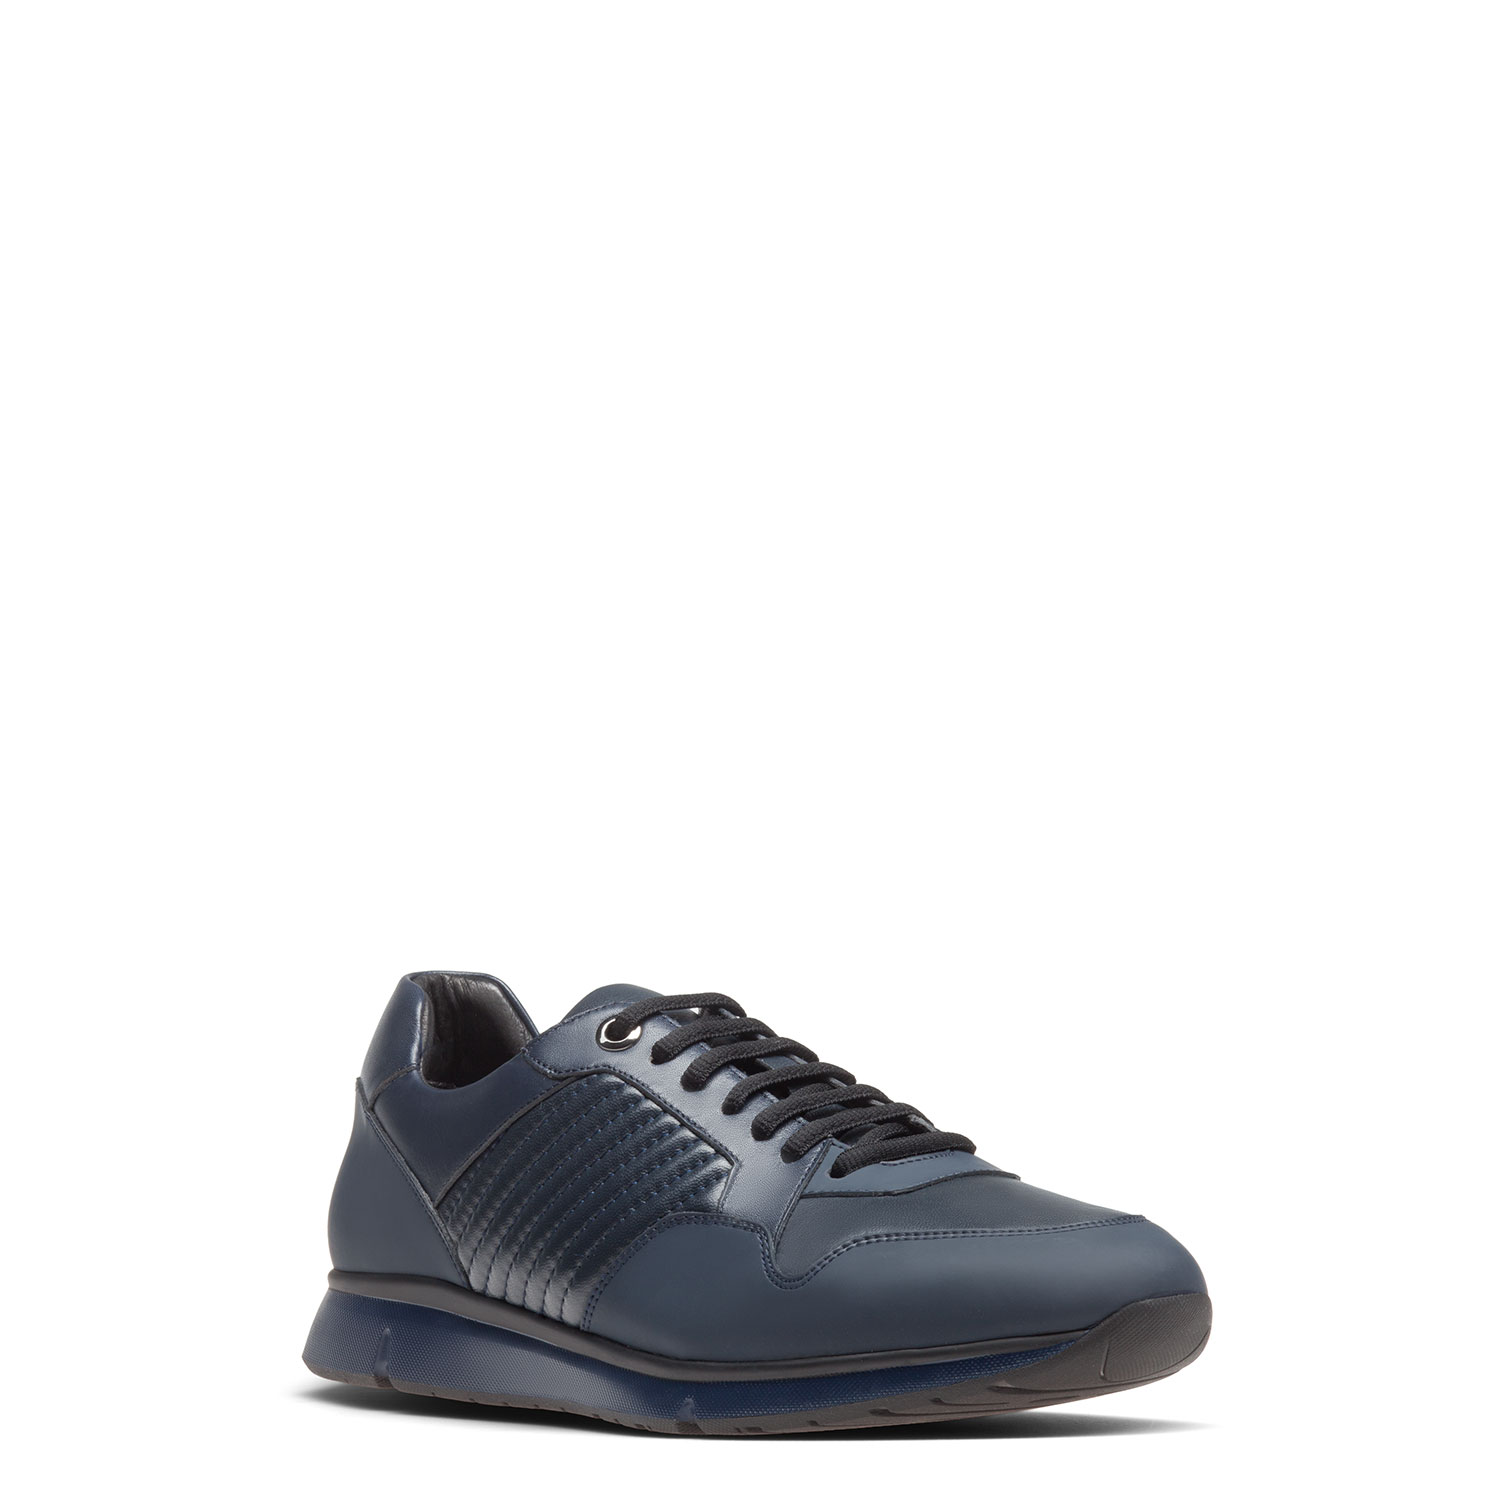 Men's shoes PAZOLINI YN-DON5-6